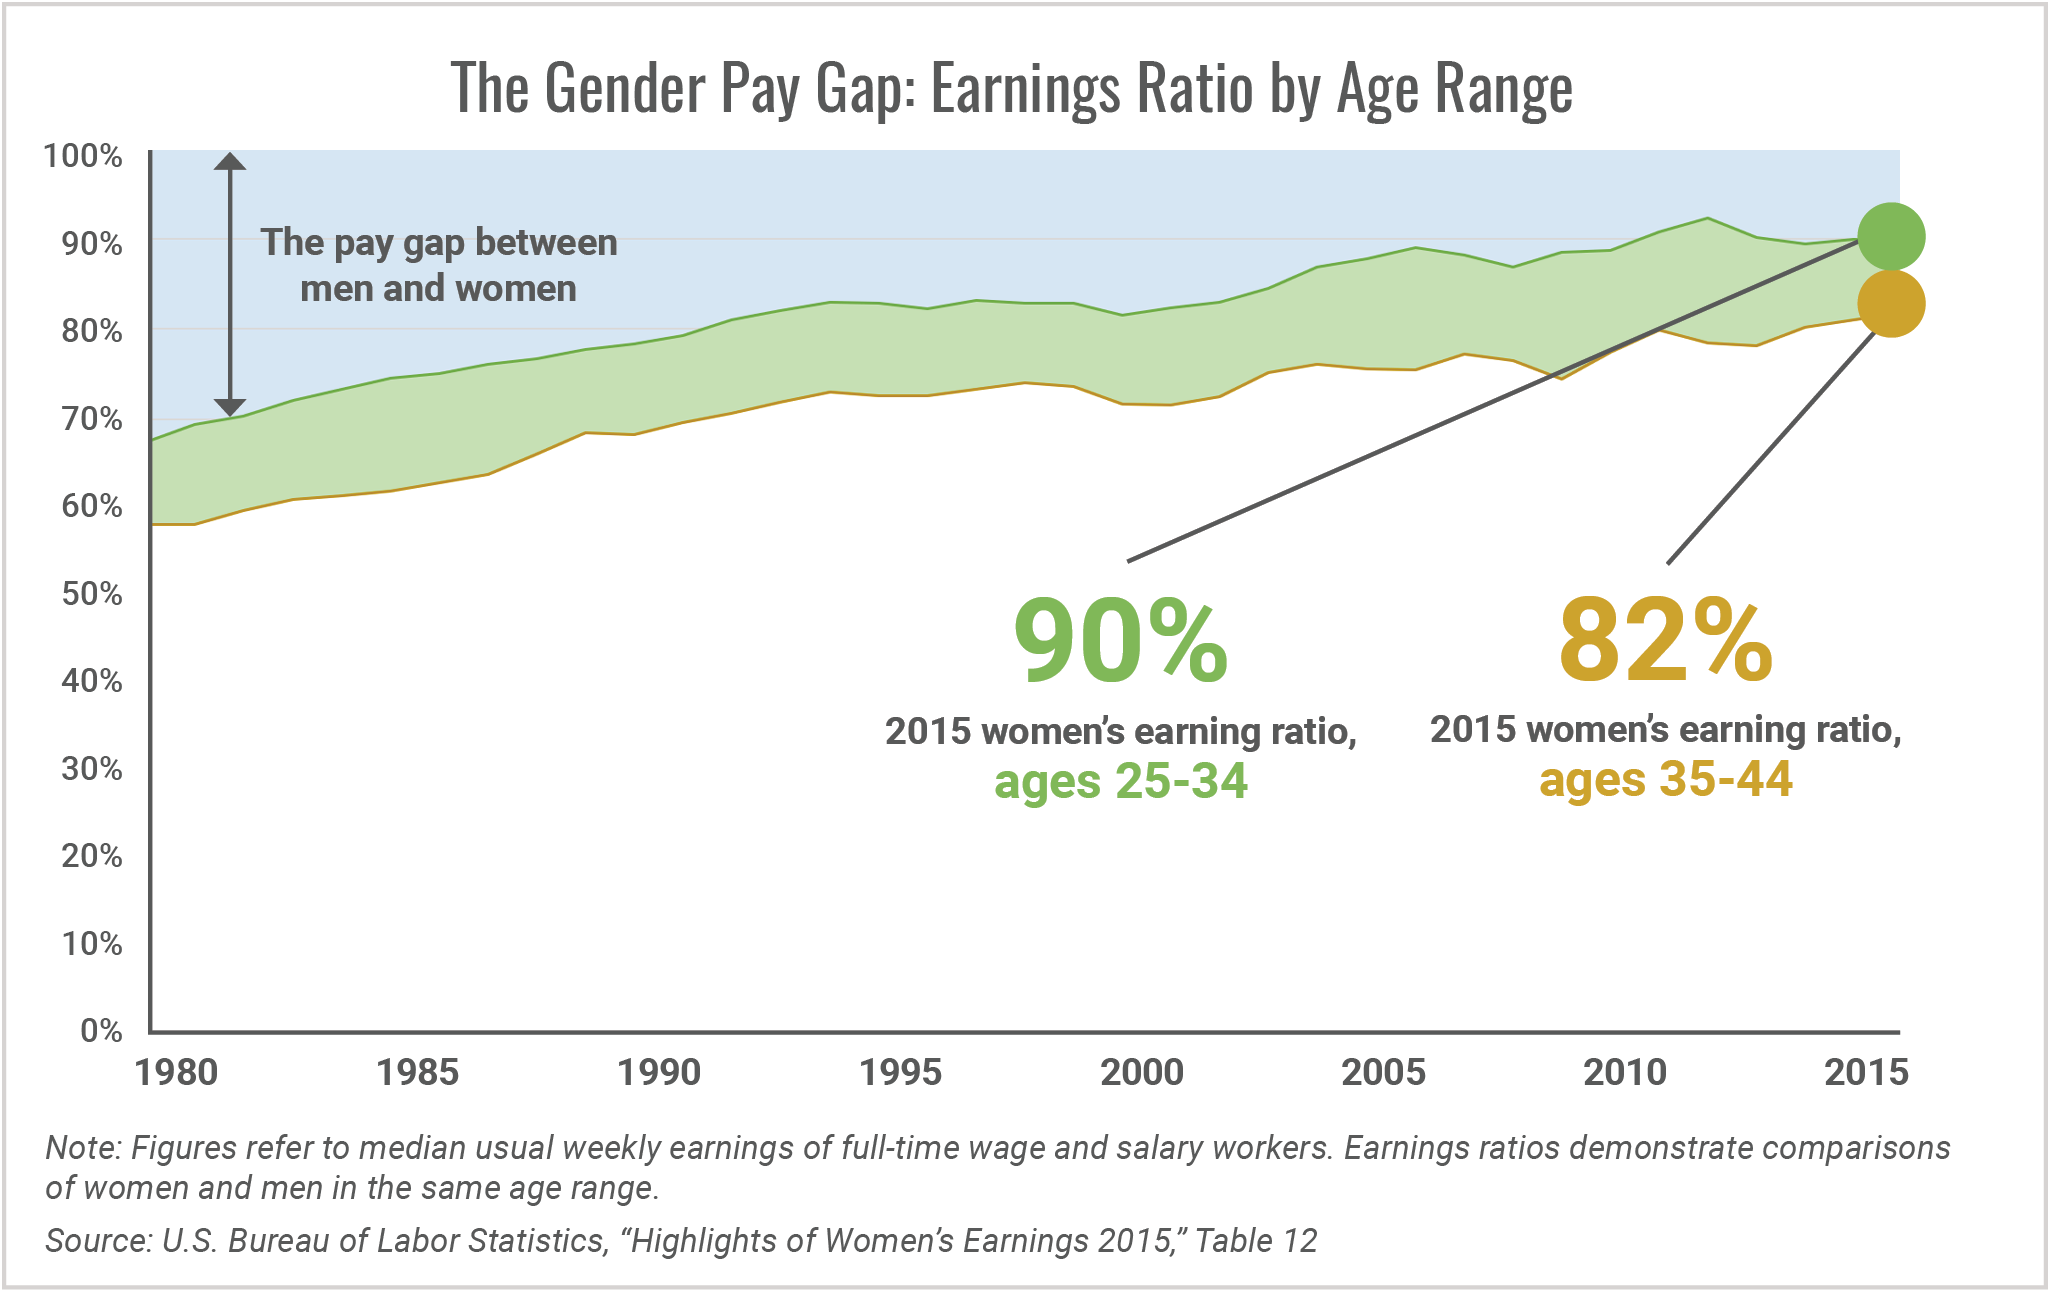 The Gender Pay Gap Earnings Ratio by Age Range